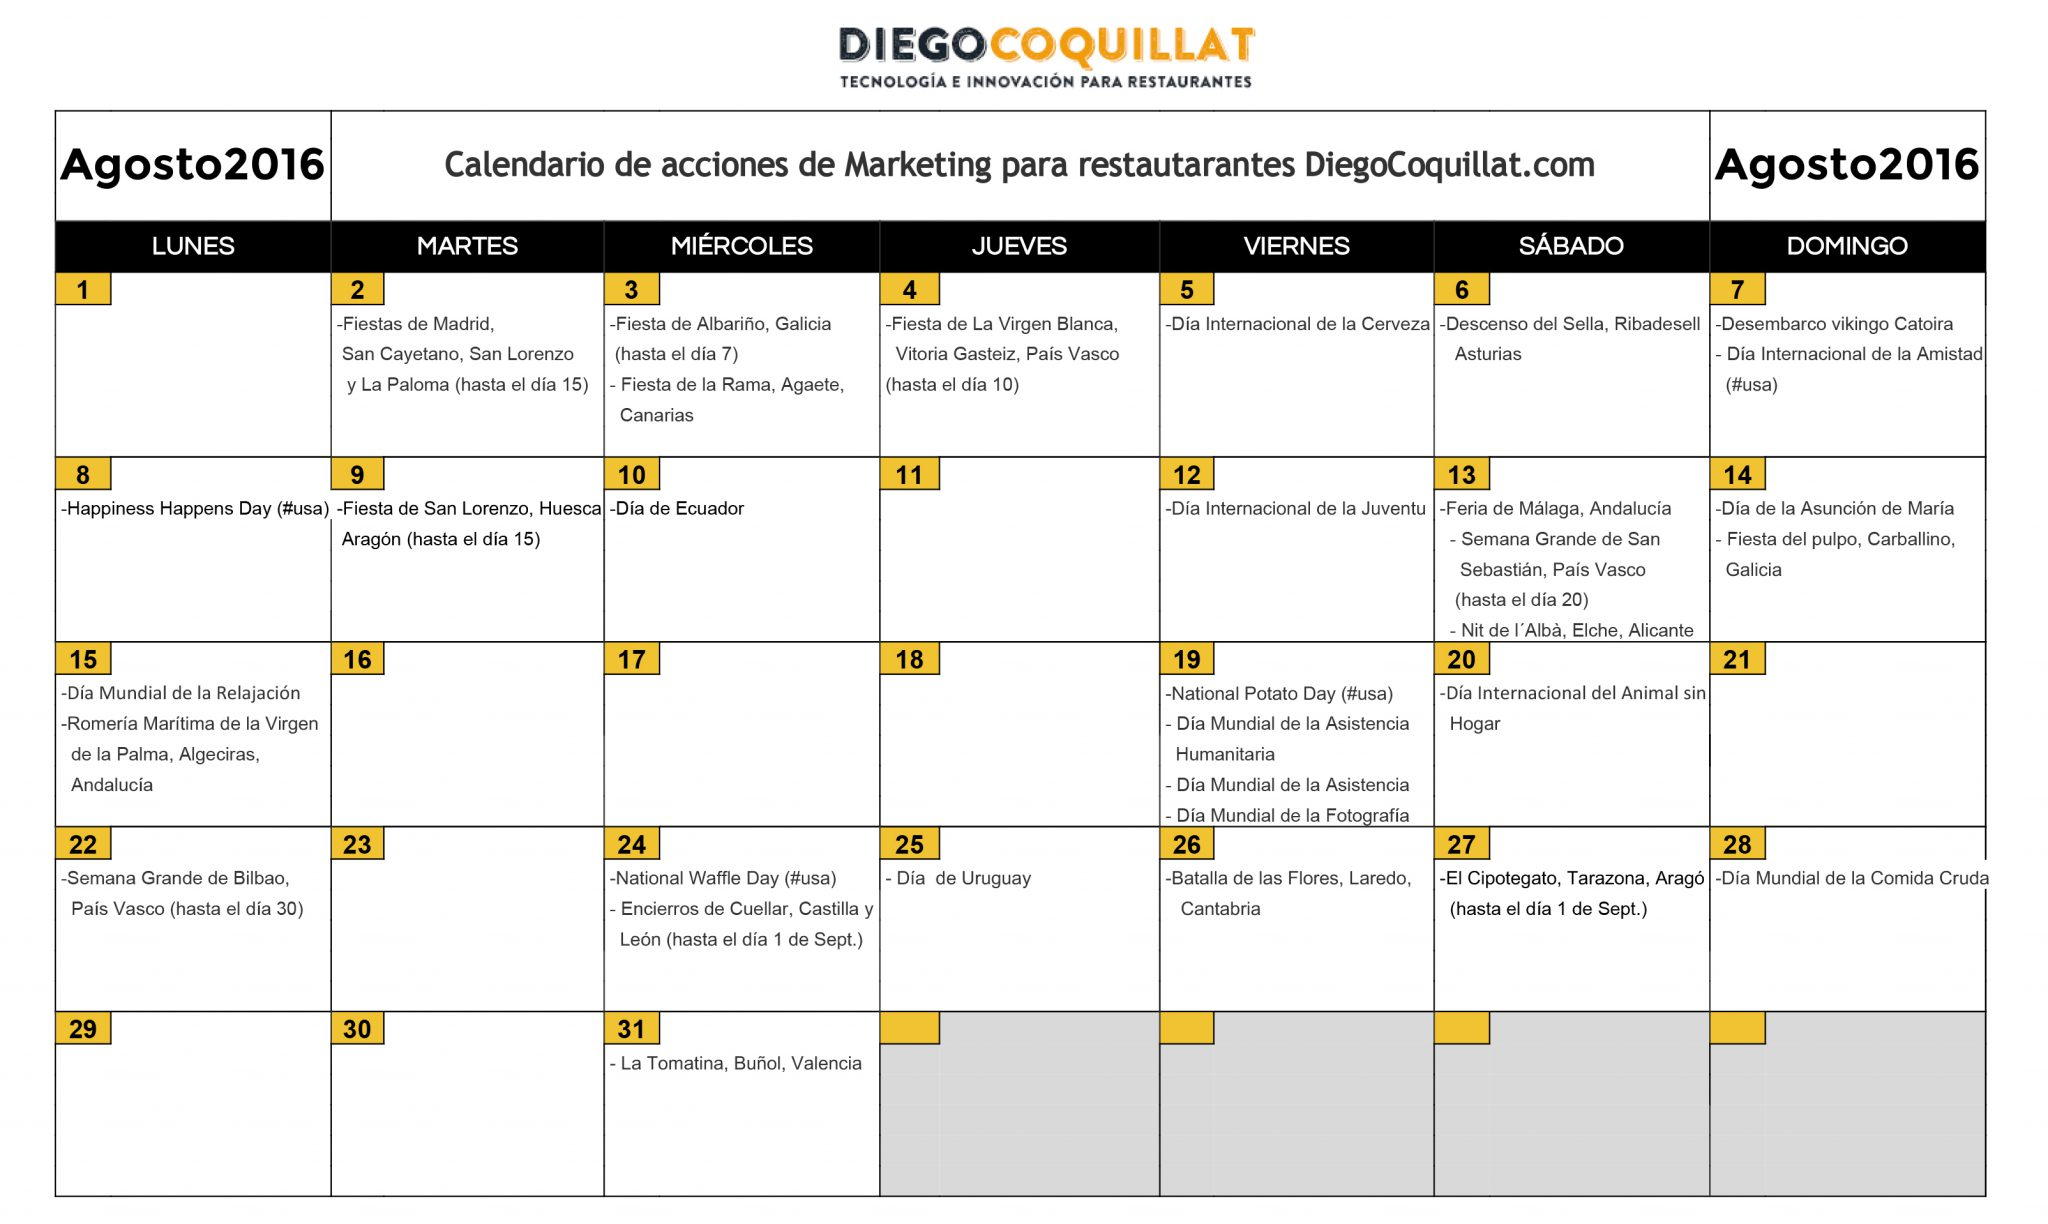 August 2016: marketing activities calendar for restaurants